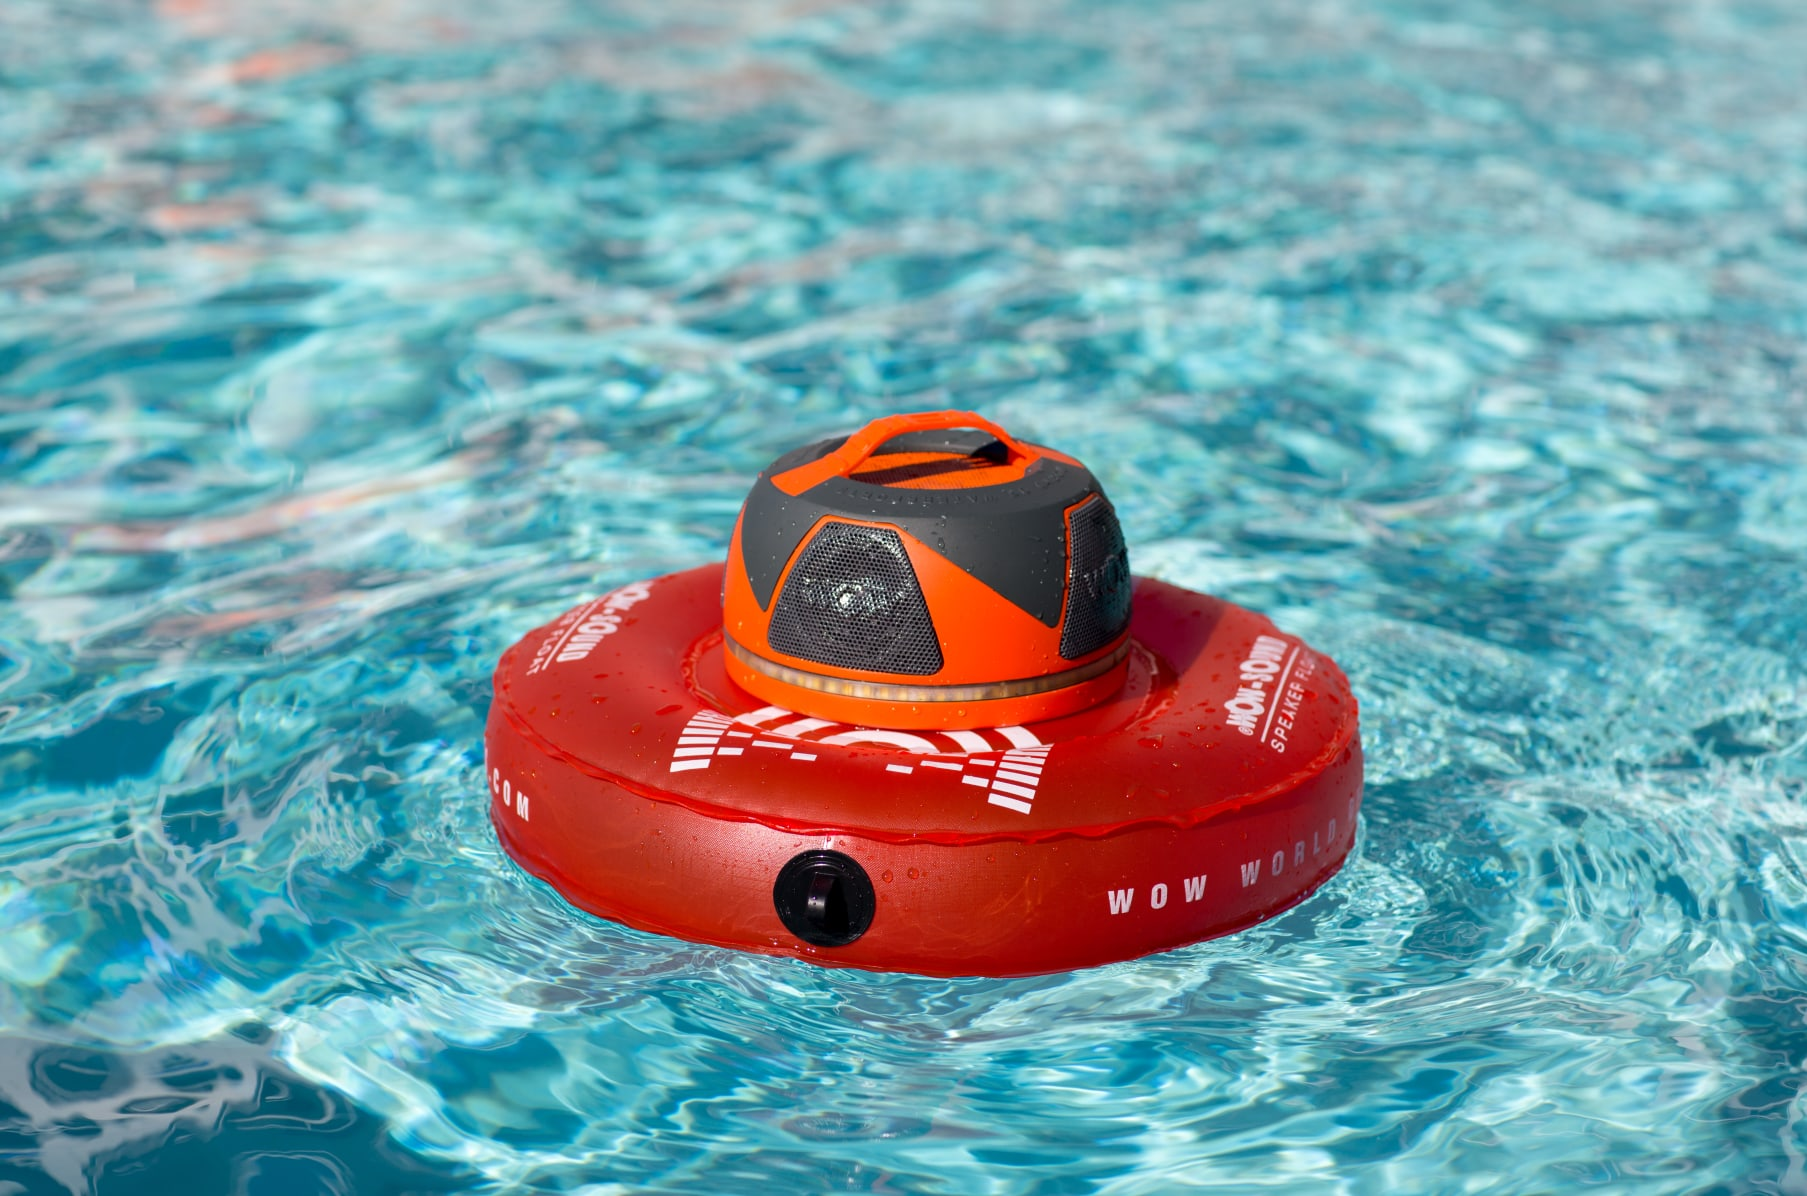 LED Lights Wow World of Watersports Wow-Sound Speaker Waterproof and Cup Holder with Long Battery Life Floating Speaker Bluetooth Shockproof